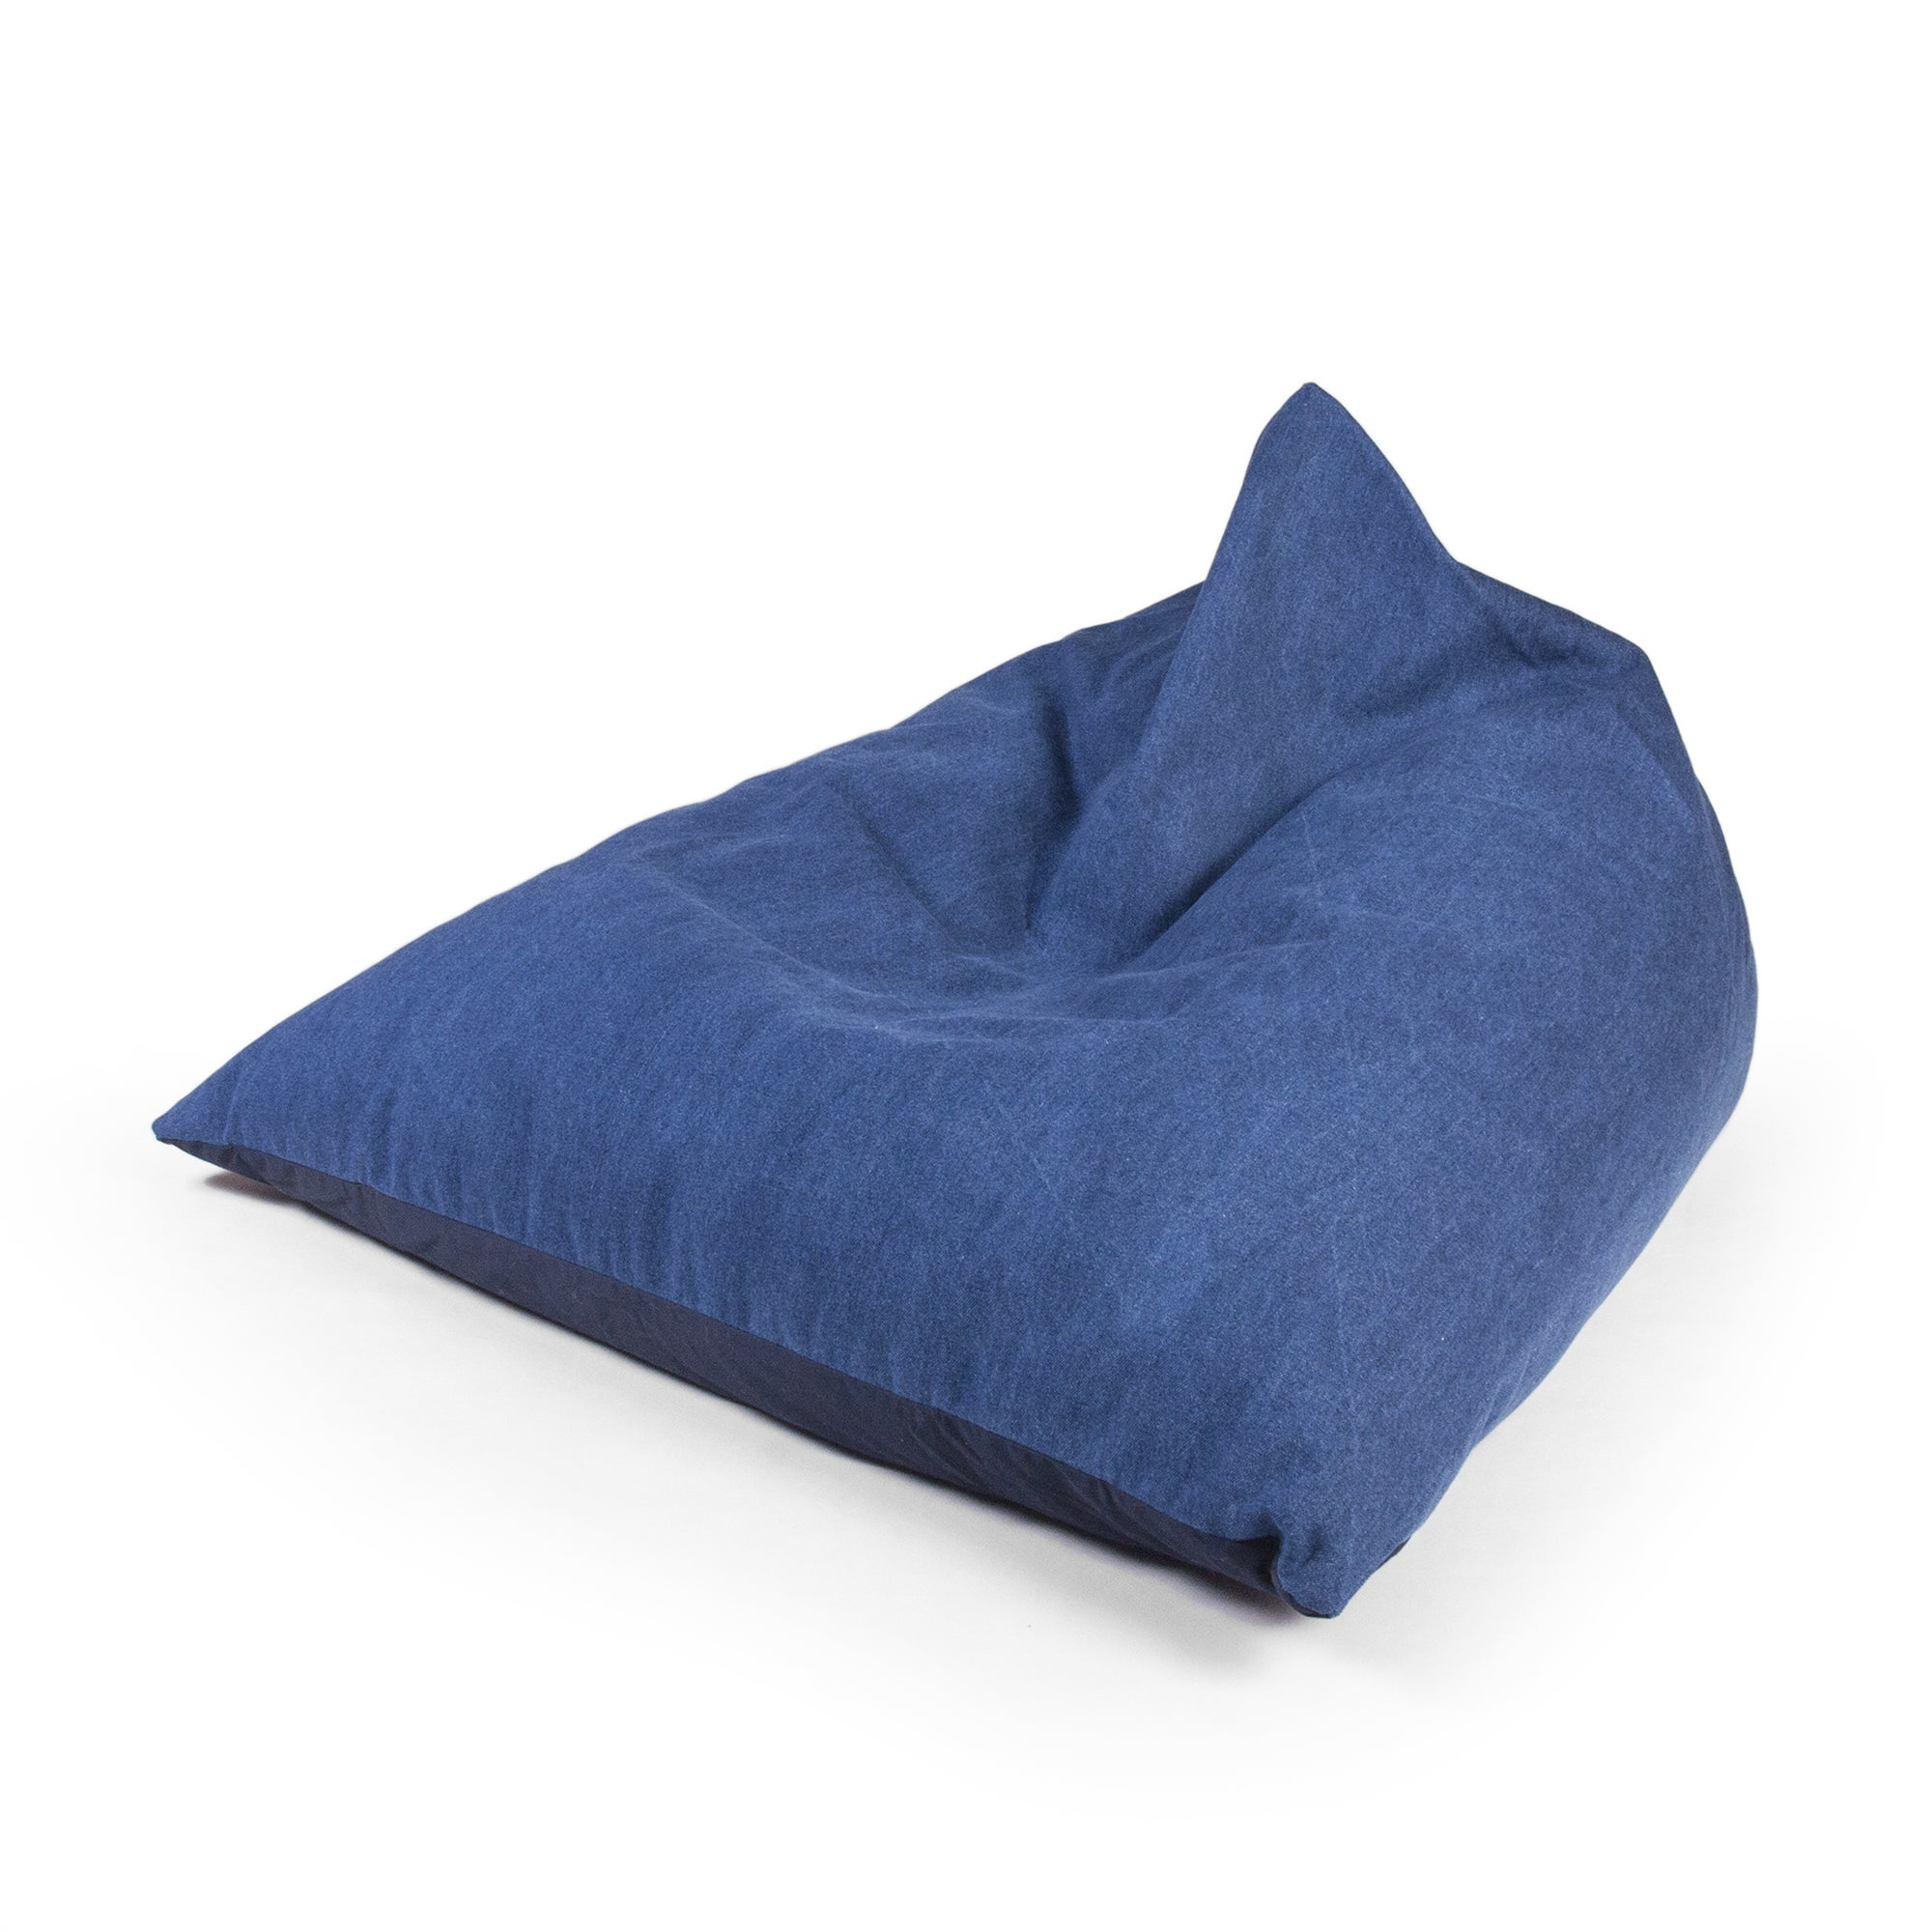 Denim Wedge Bean Bag